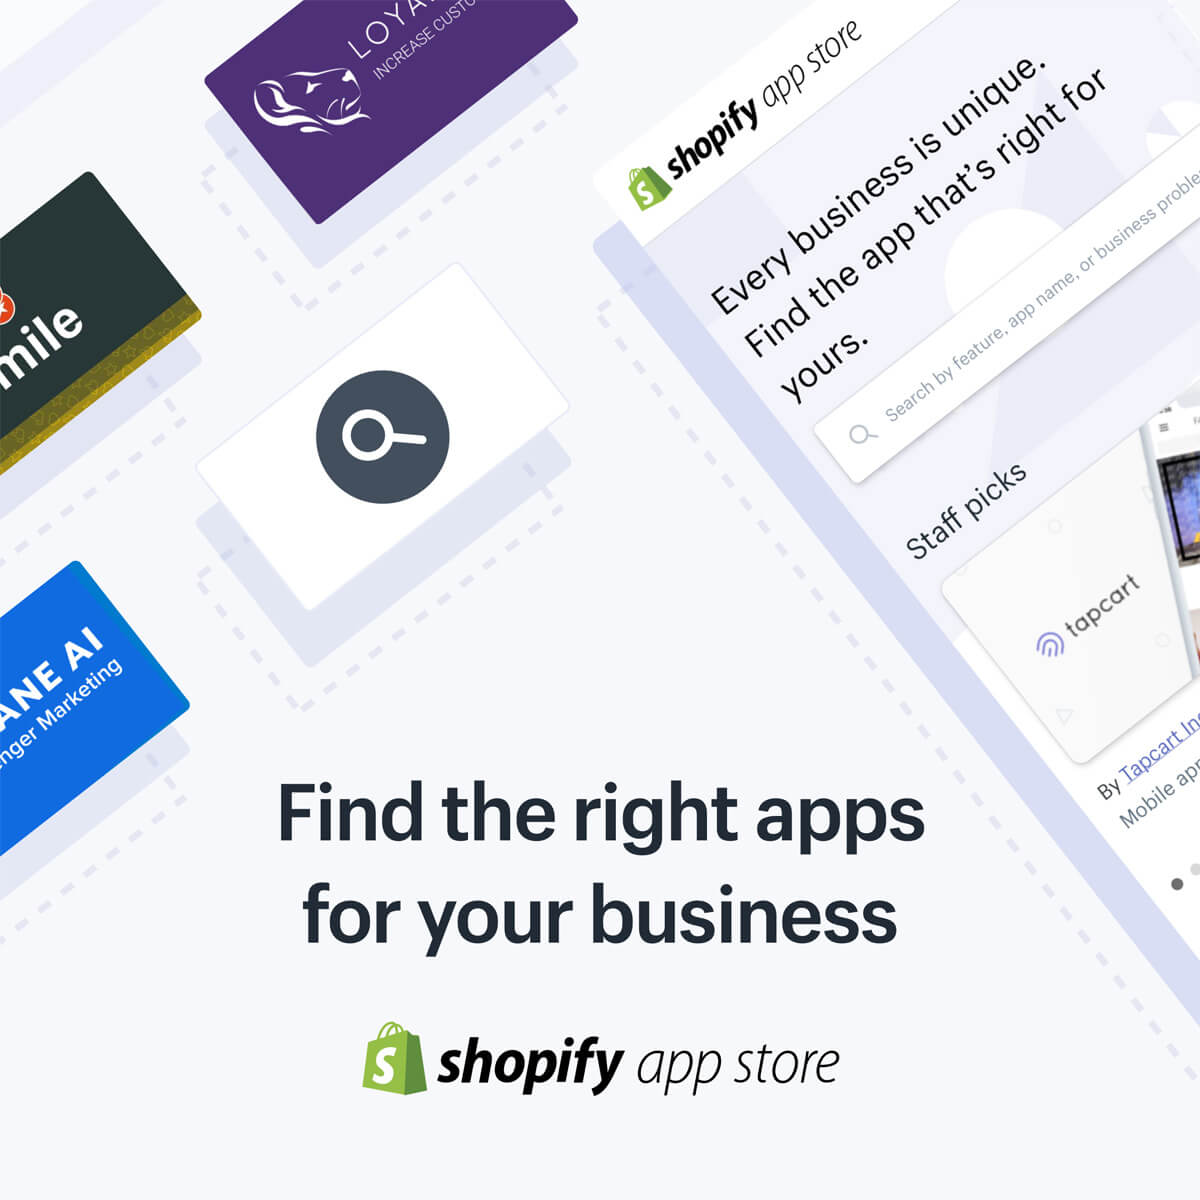 Shopify App Store: Ecommerce App Marketplace